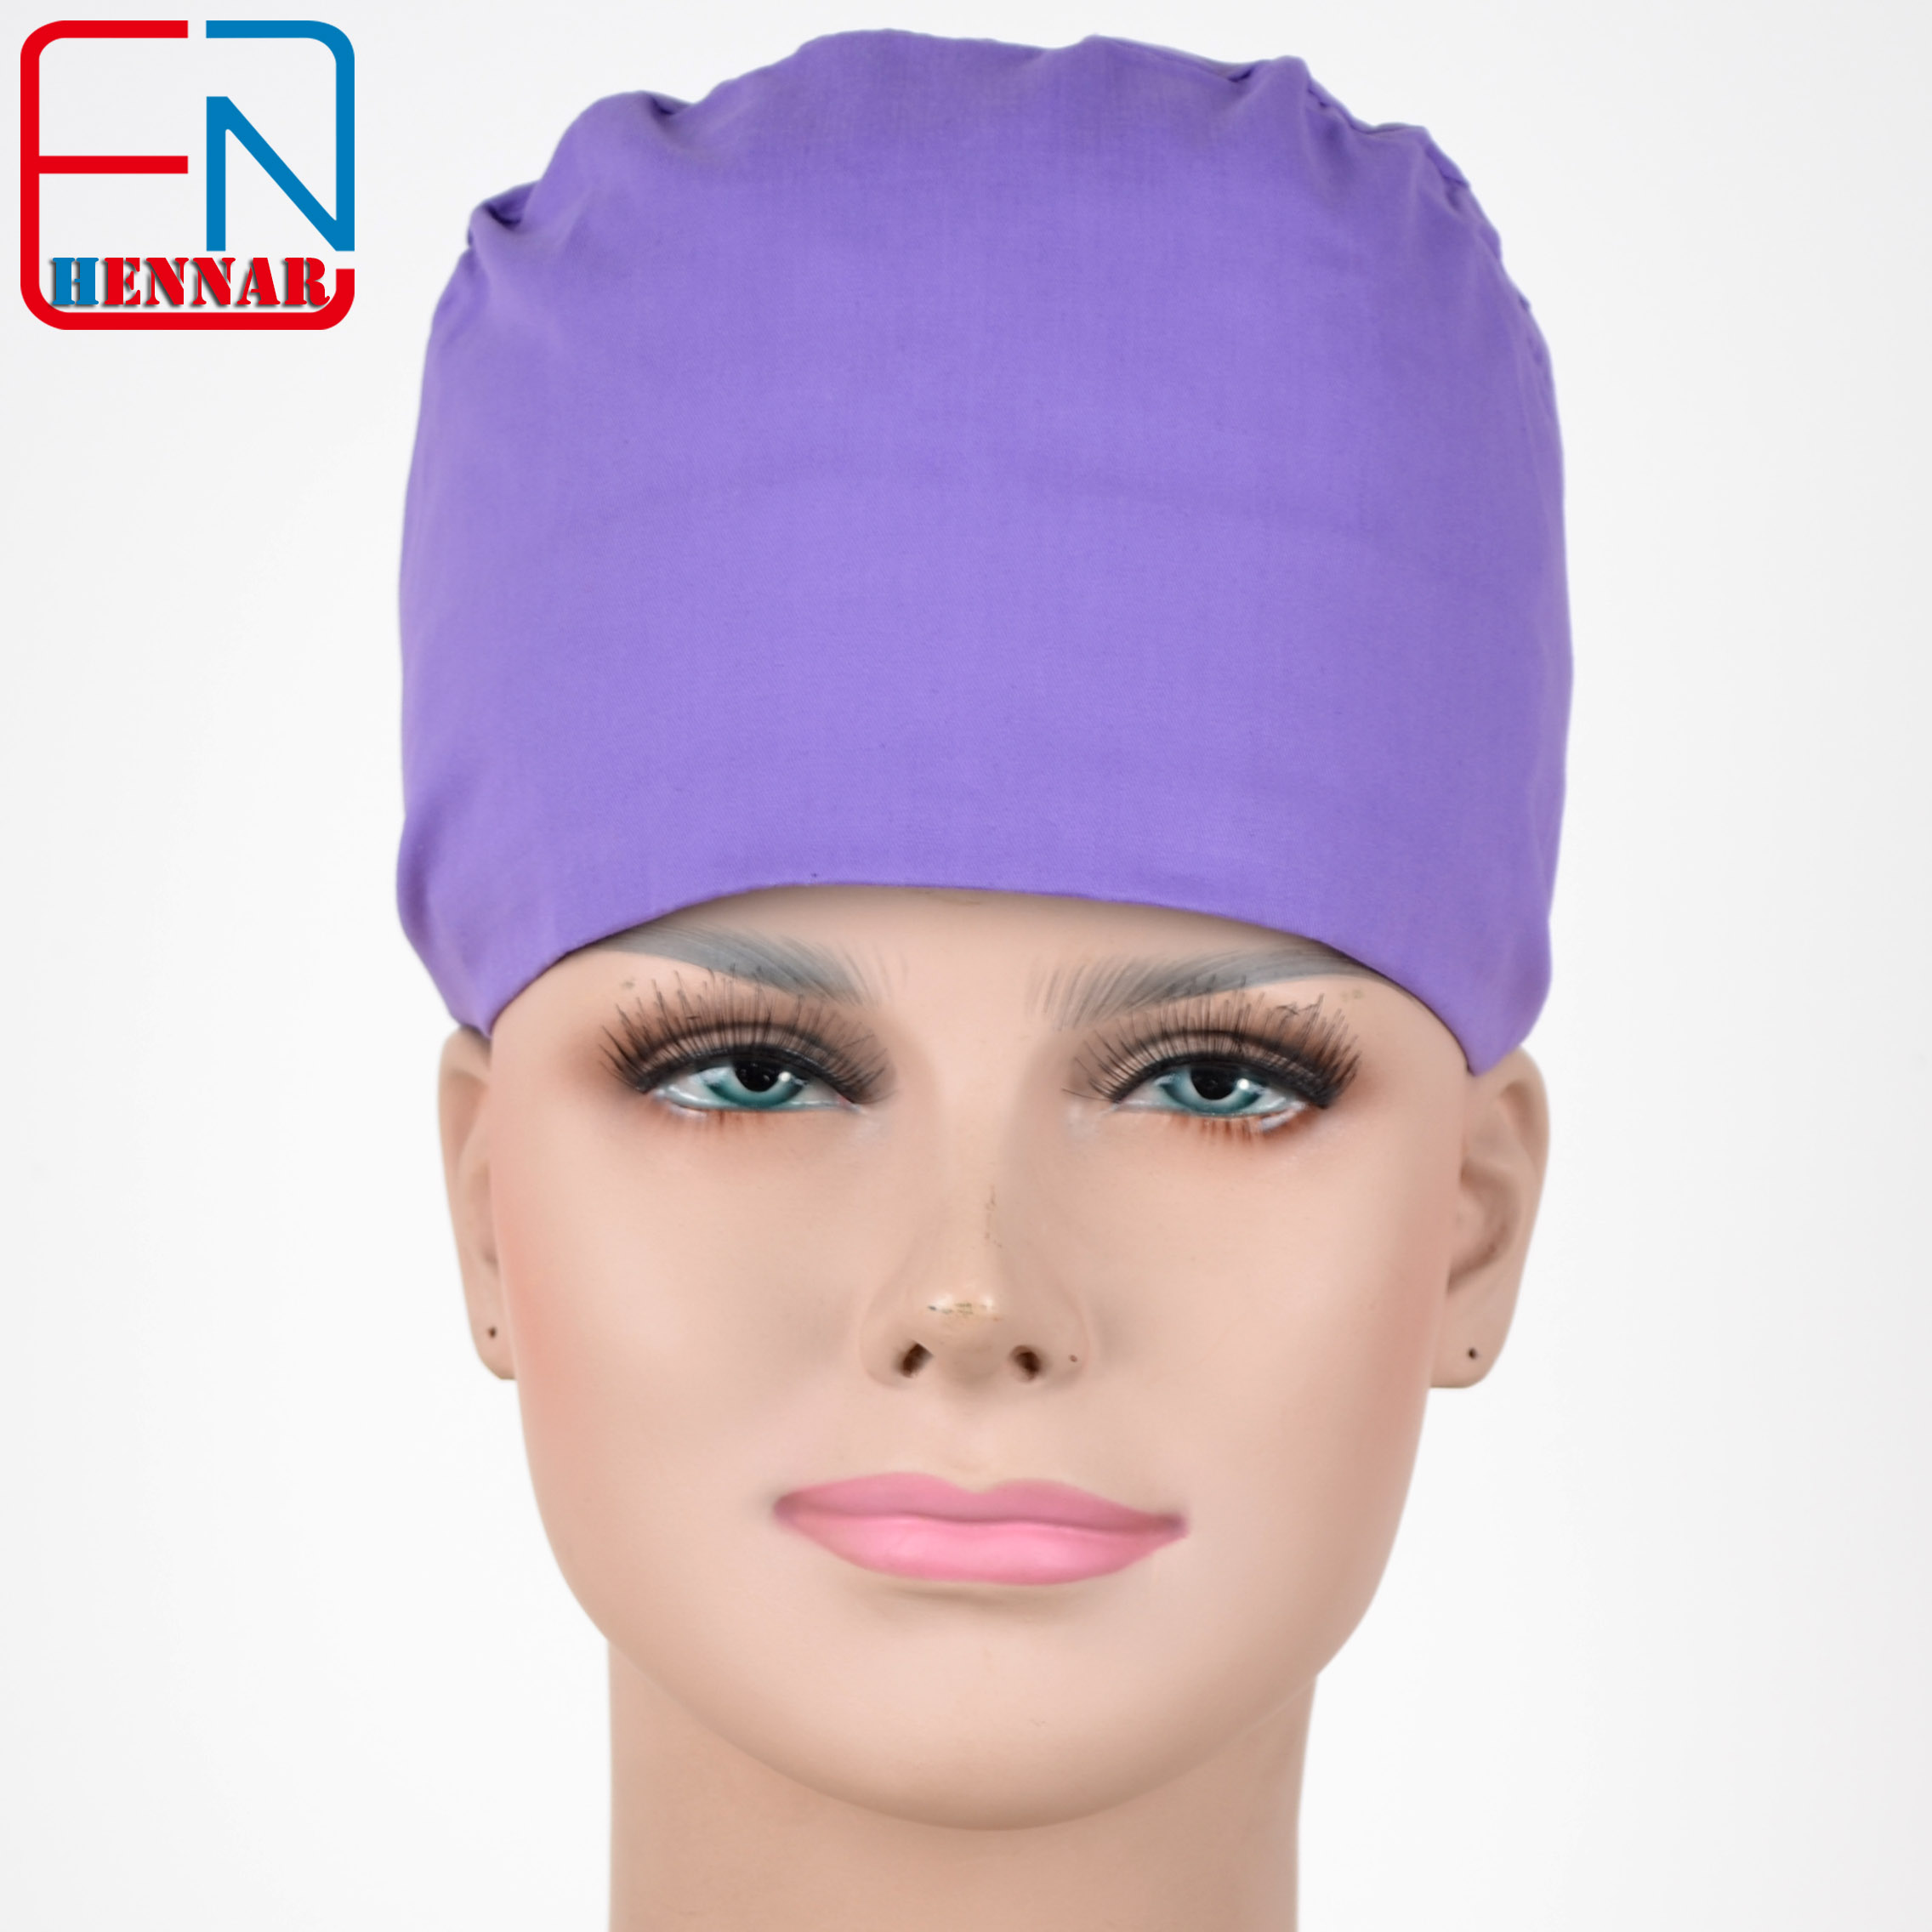 Hennar Surgical Caps For Doctors And Nurses Caps,100% Cotton Scrub Caps In Light Blue